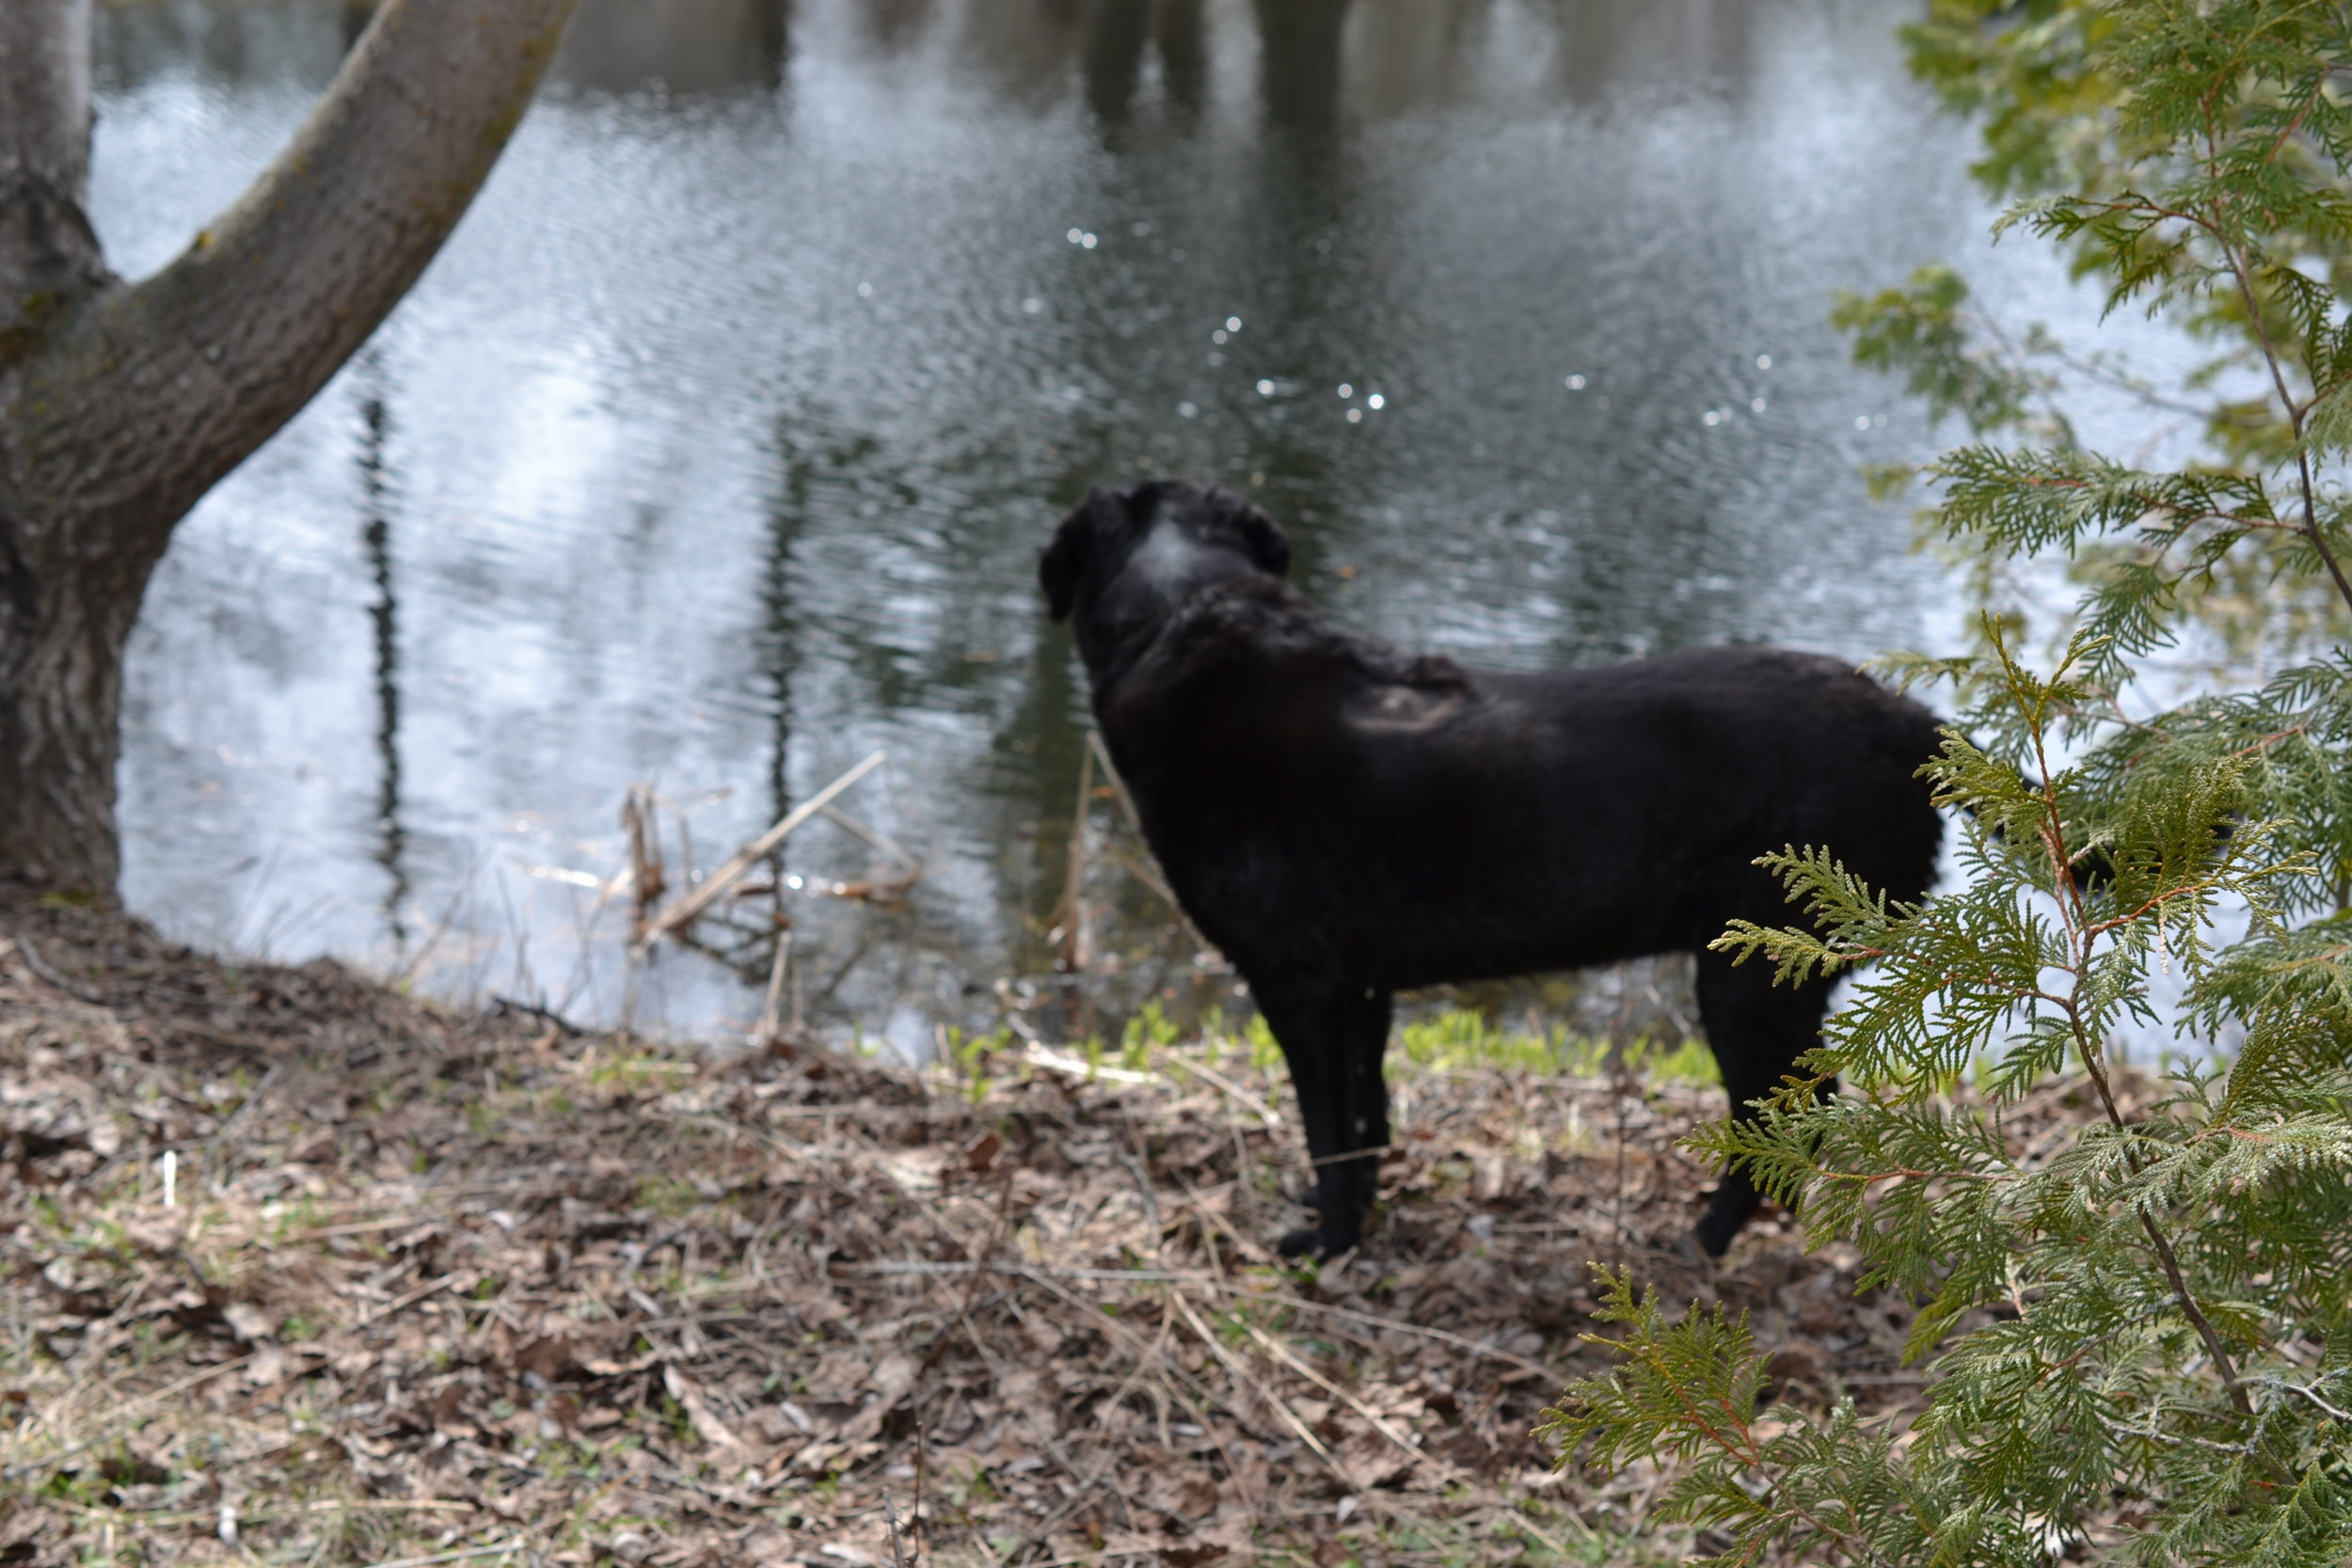 Lucy is our river expert as she does most of the stick retrieving and general splashing around